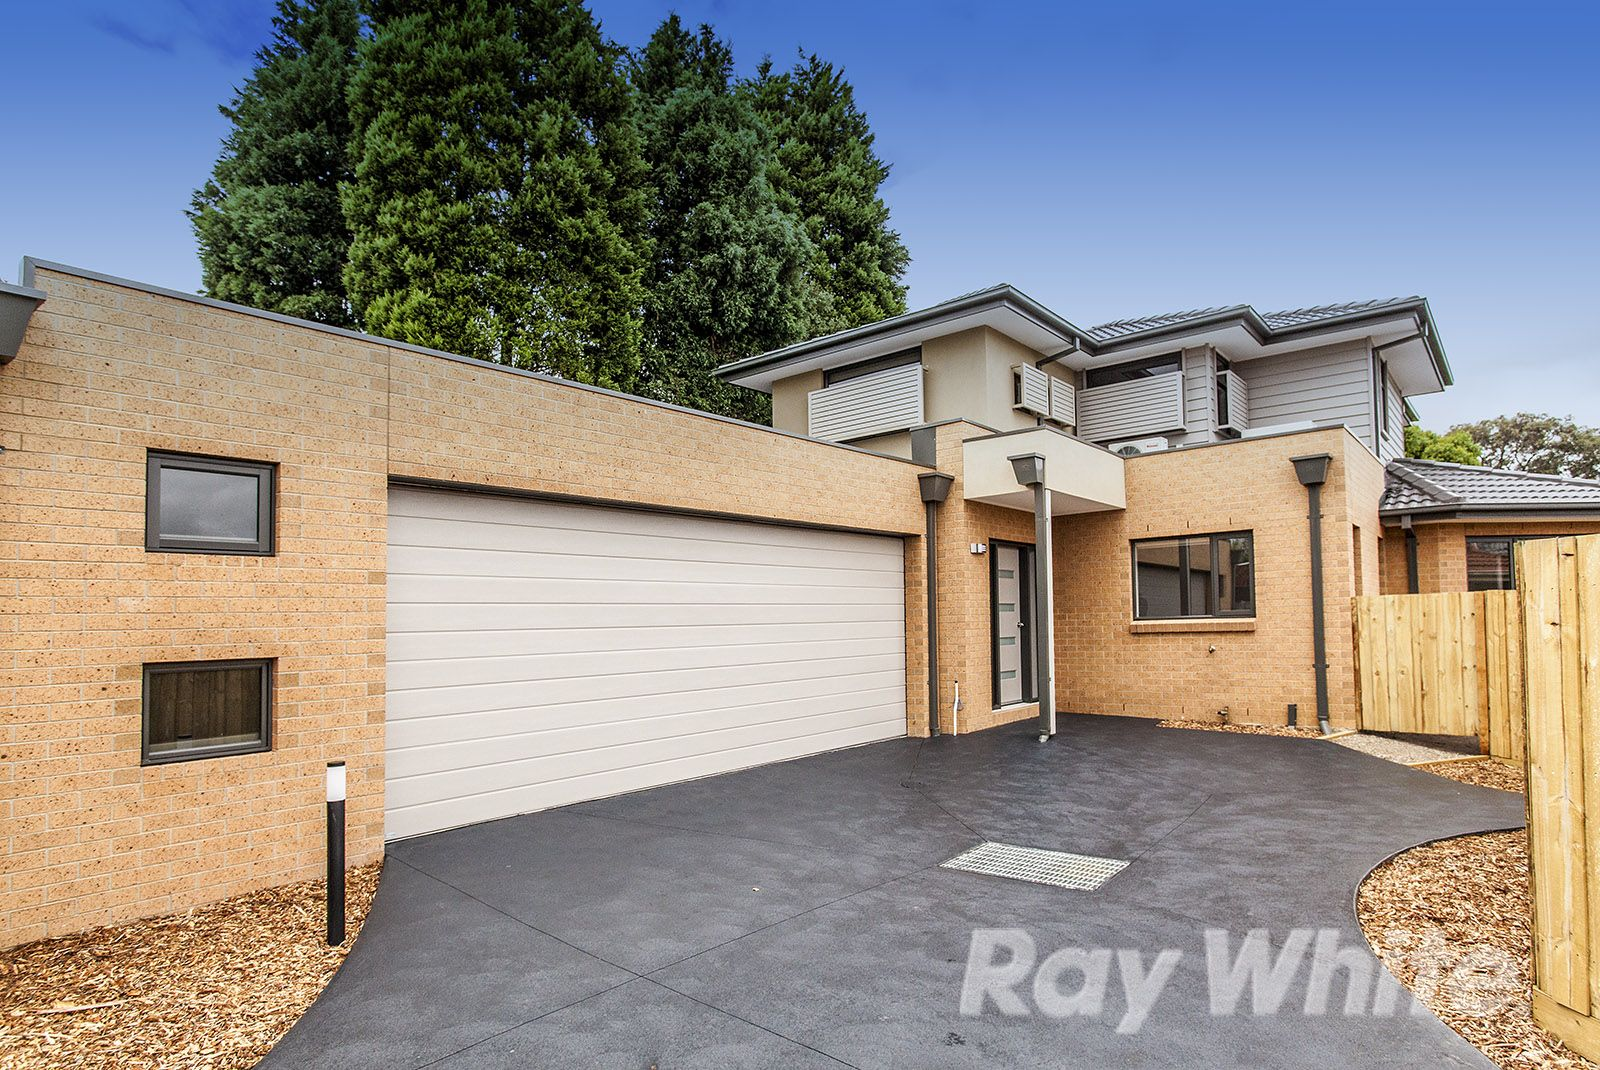 2/5 Watson Close, Rowville VIC 3178, Image 1